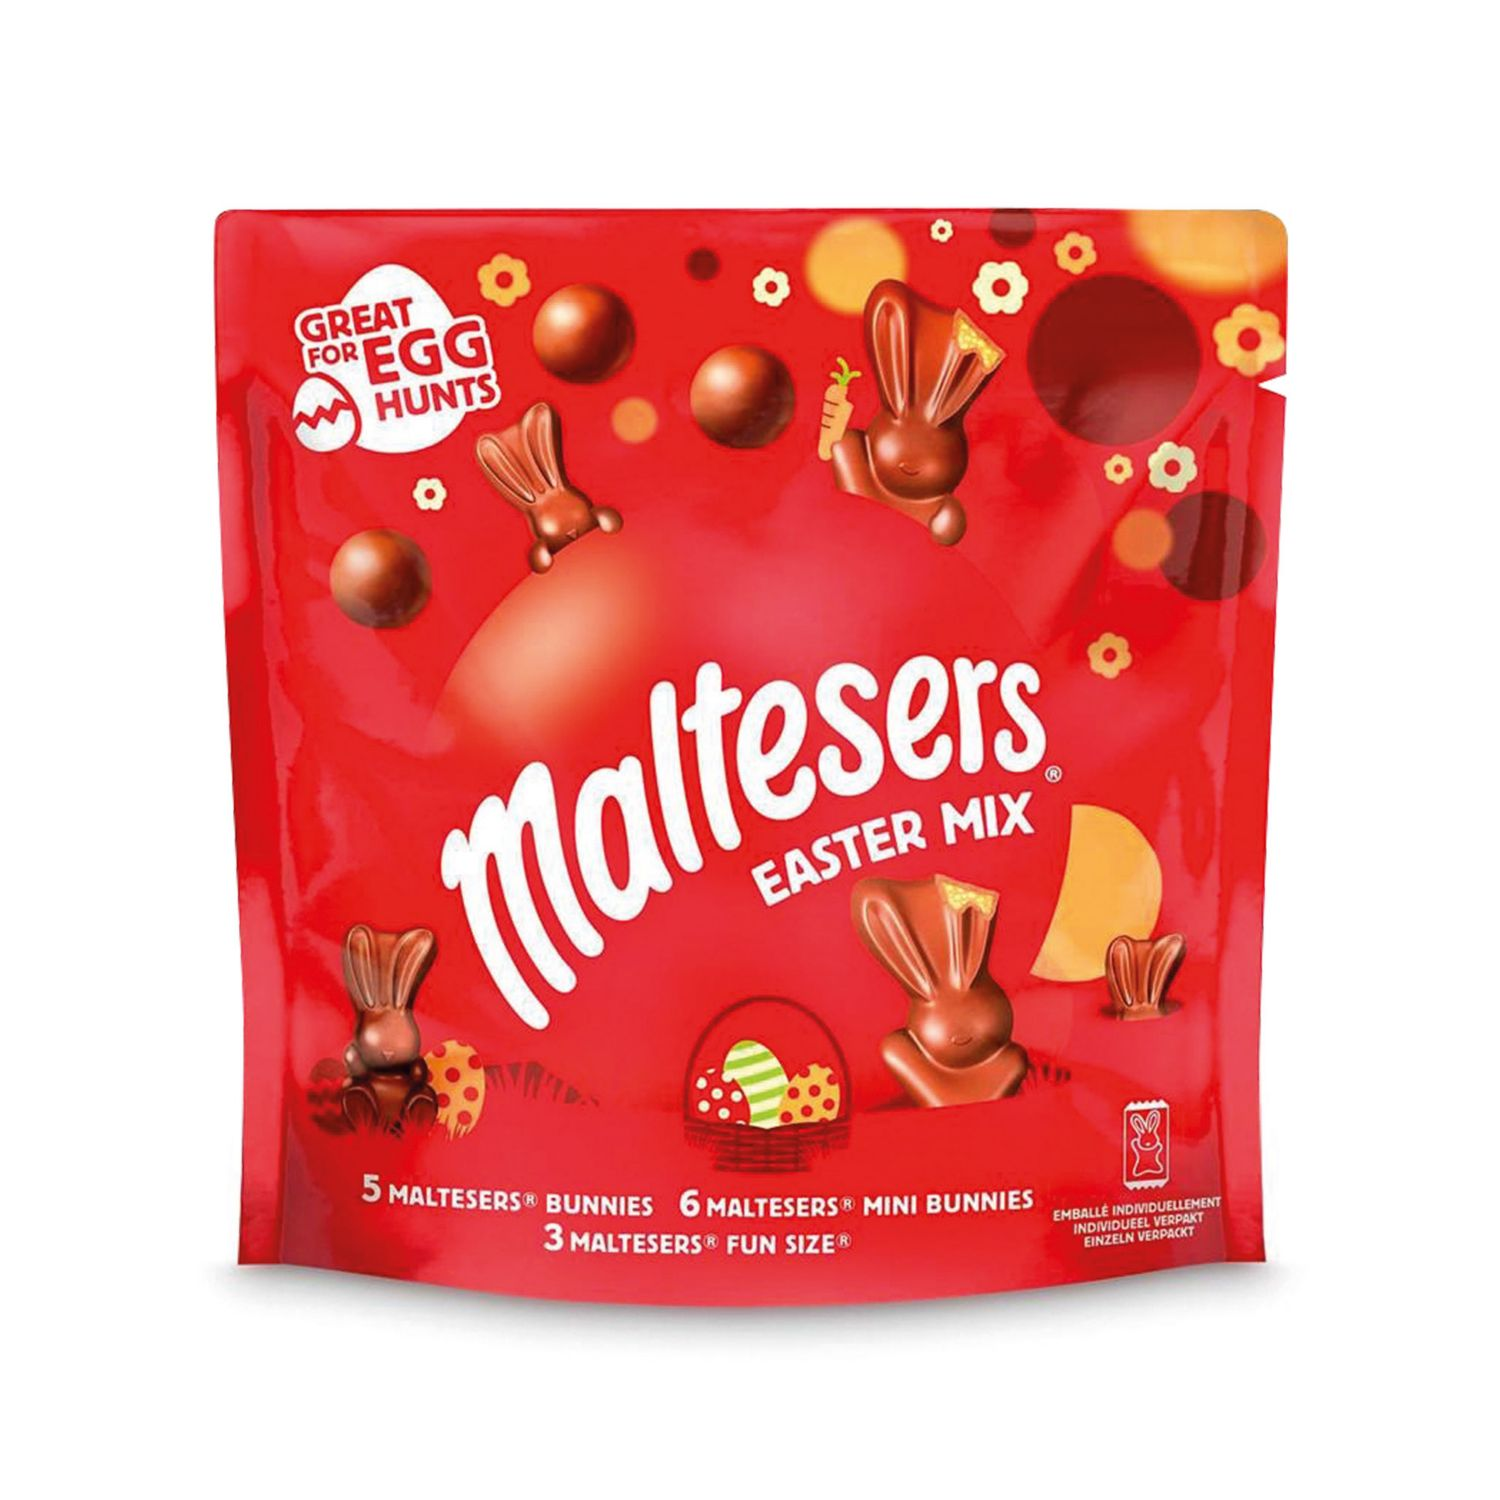 MALTESERS Oster-Mix